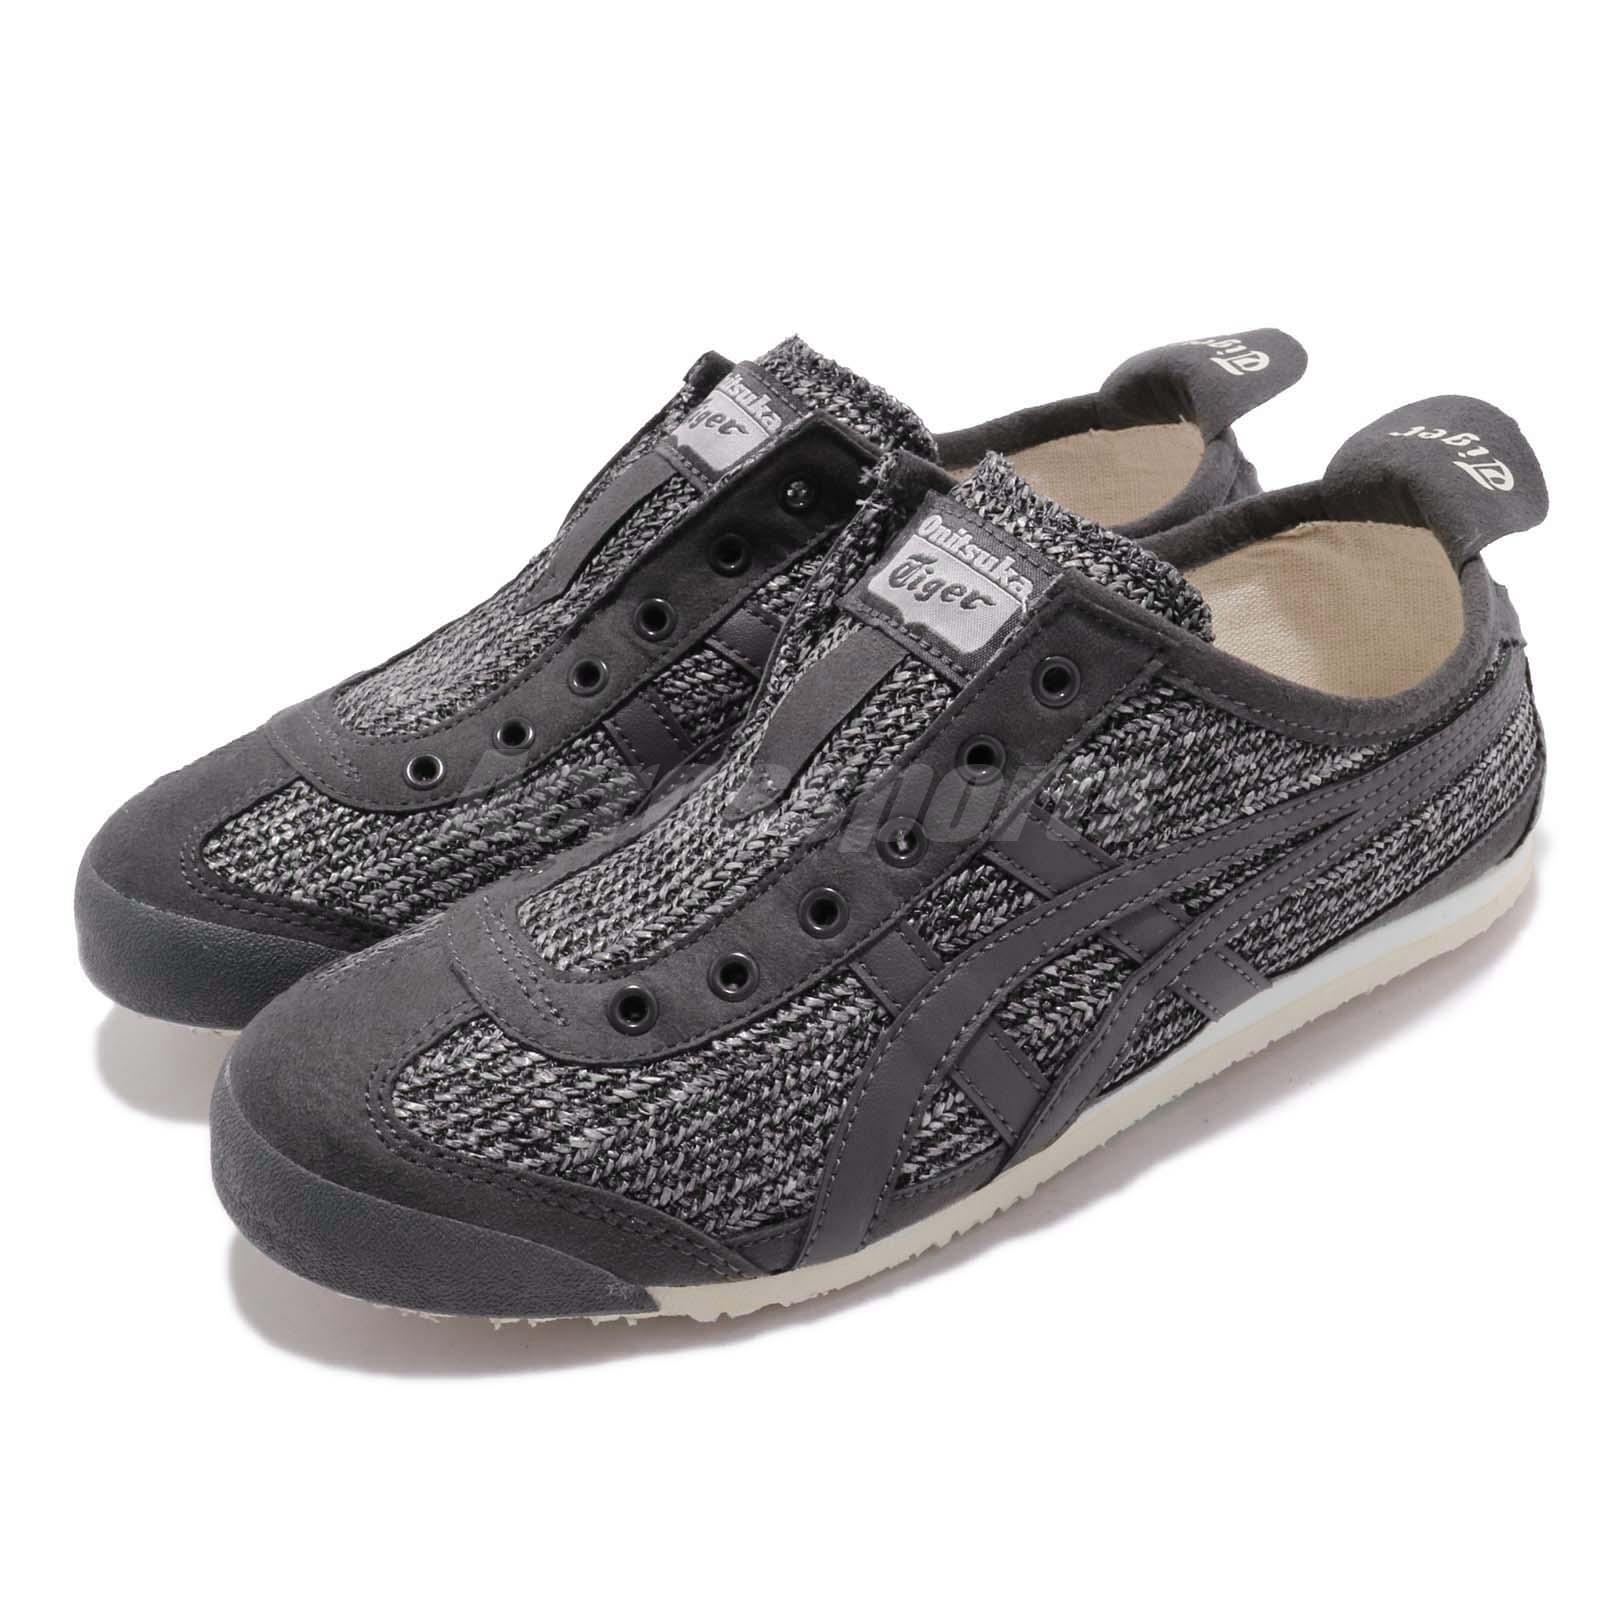 buy popular de798 d862b Details about Asics Onitsuka Tiger Mexico 66 Slip On Grey Women Shoes  Sneakers 1182A046-002